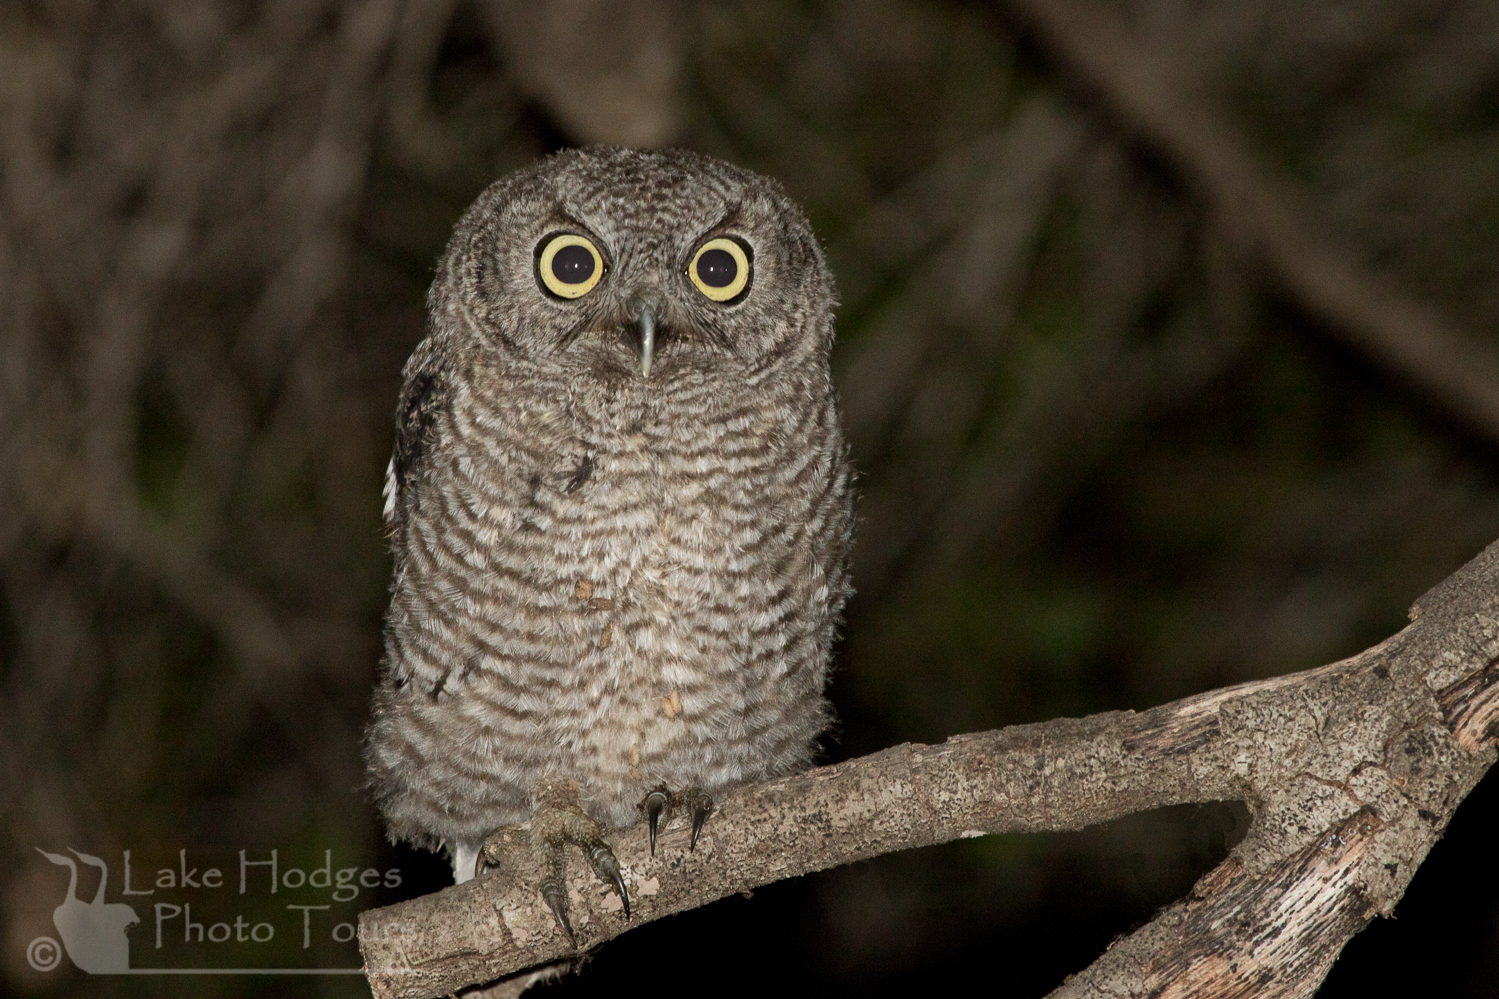 Western screech owlet at Lake Hodges Photo Tours, CA, USA